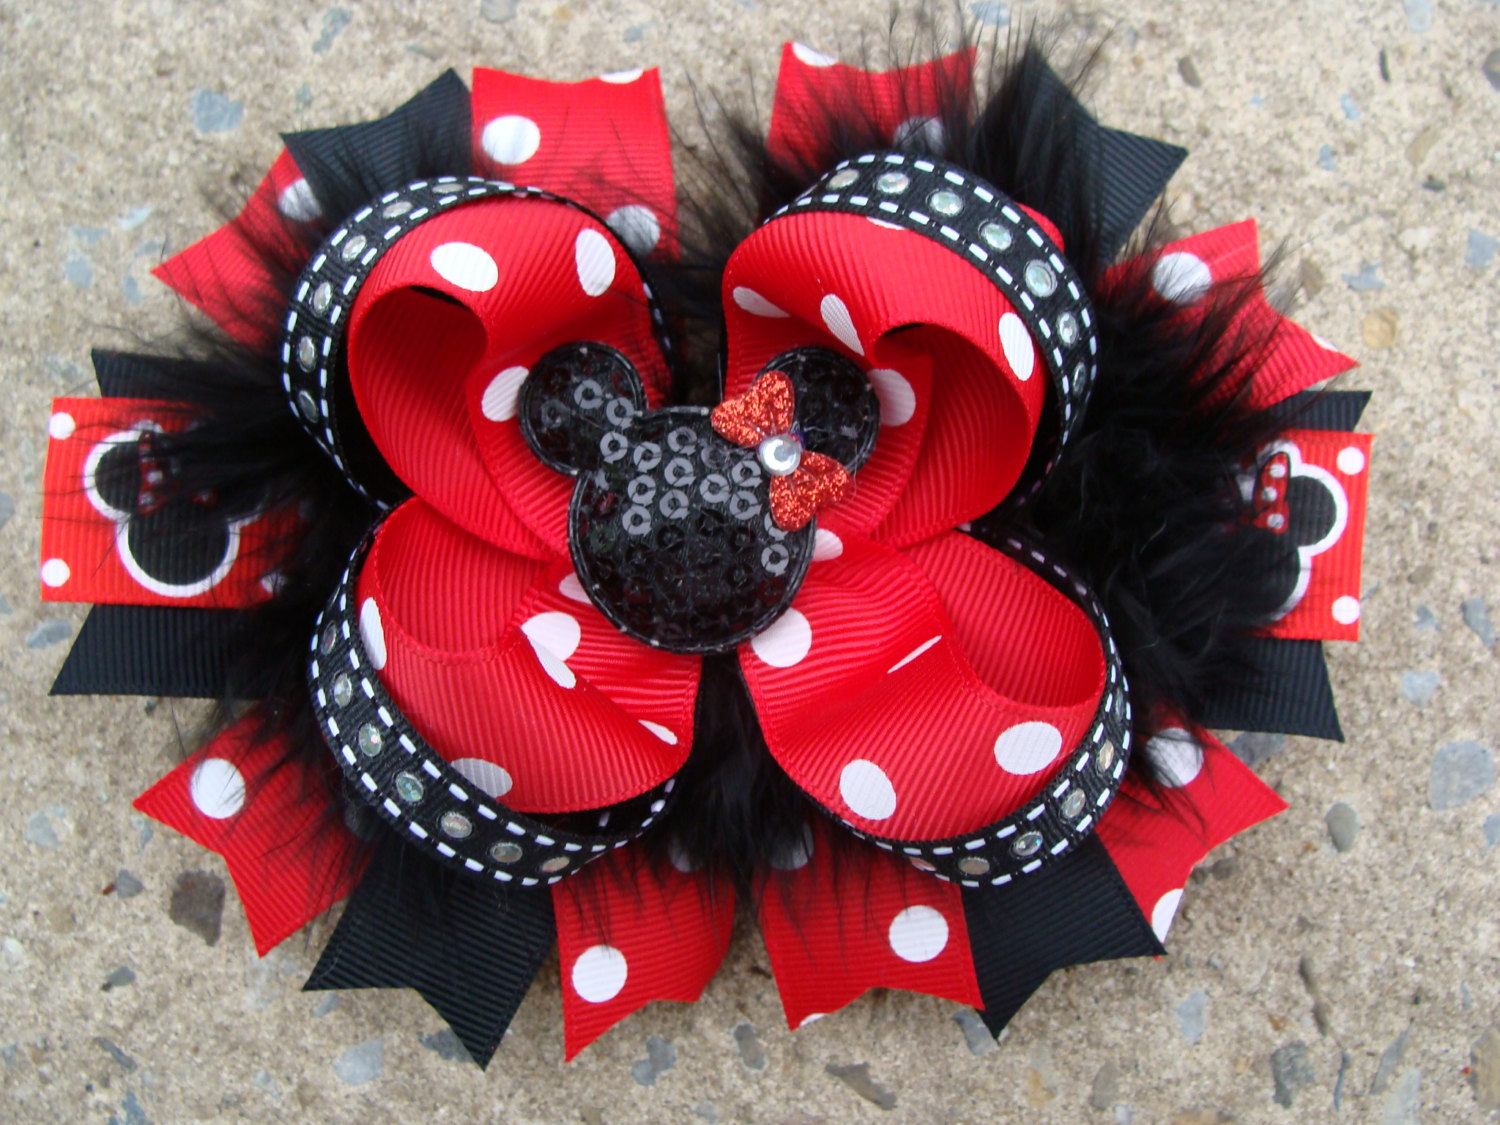 Disney Hair Bow Boutique hair bow Minnie Mouse Hair Bow hair clip Feather Hair Bow Red and Black Minnie Mouse Hair Bow